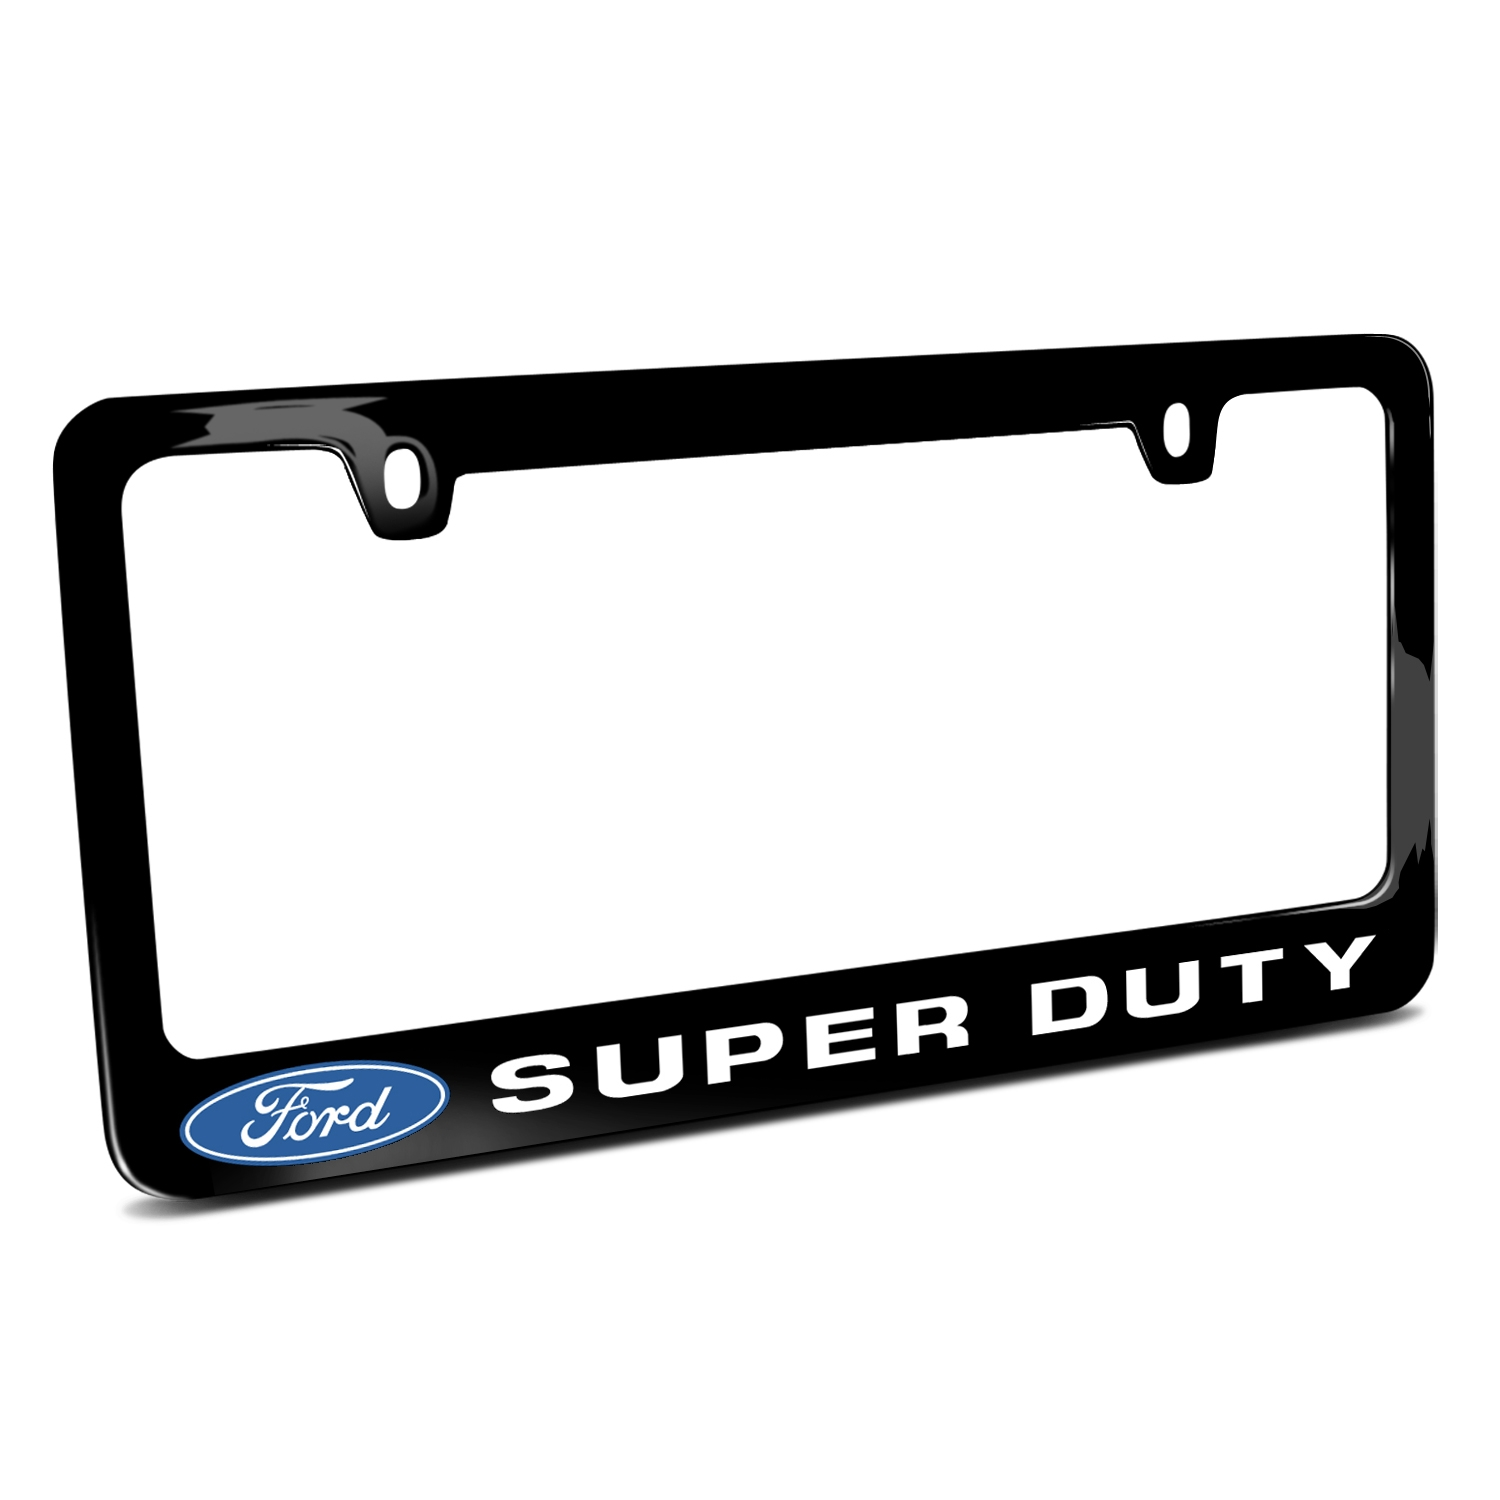 Ford Super Duty Black Metal License Plate Frame